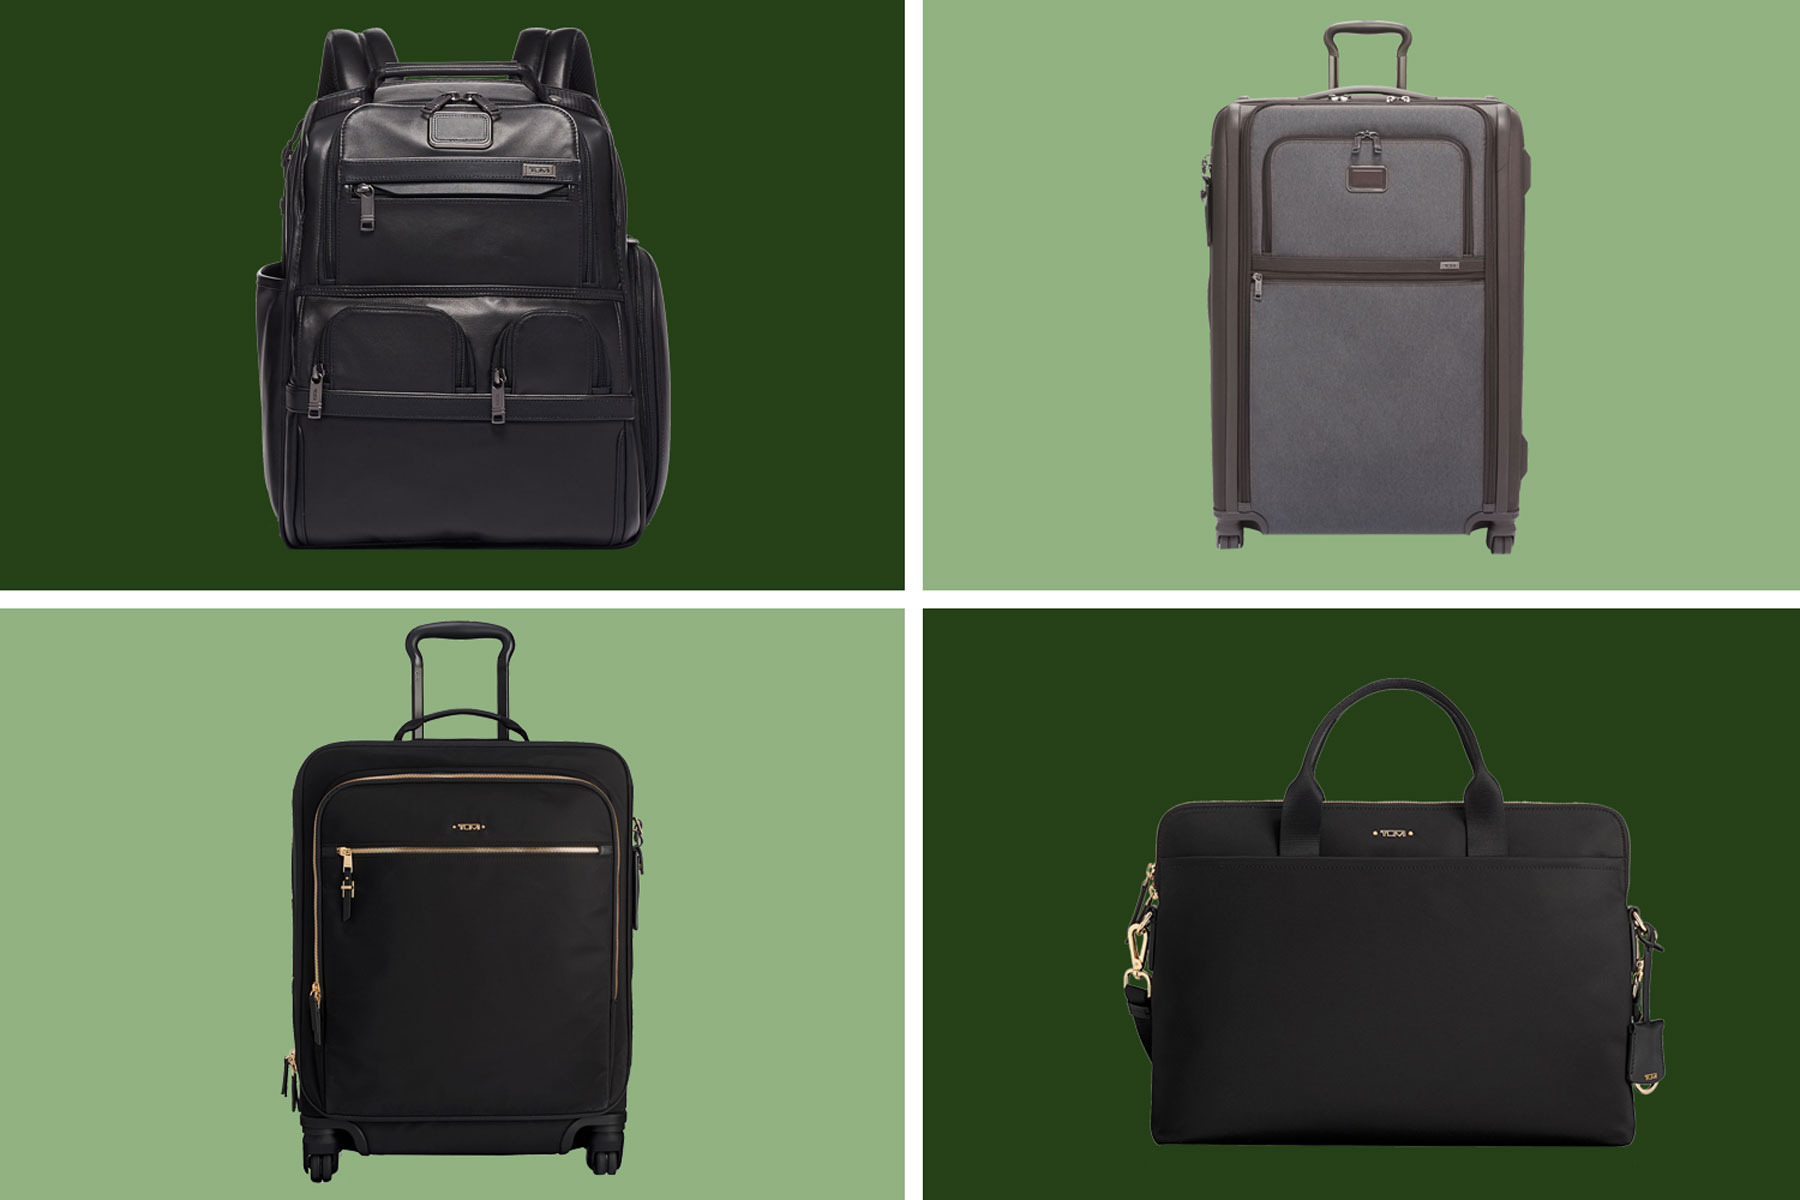 Various Tumi luggage